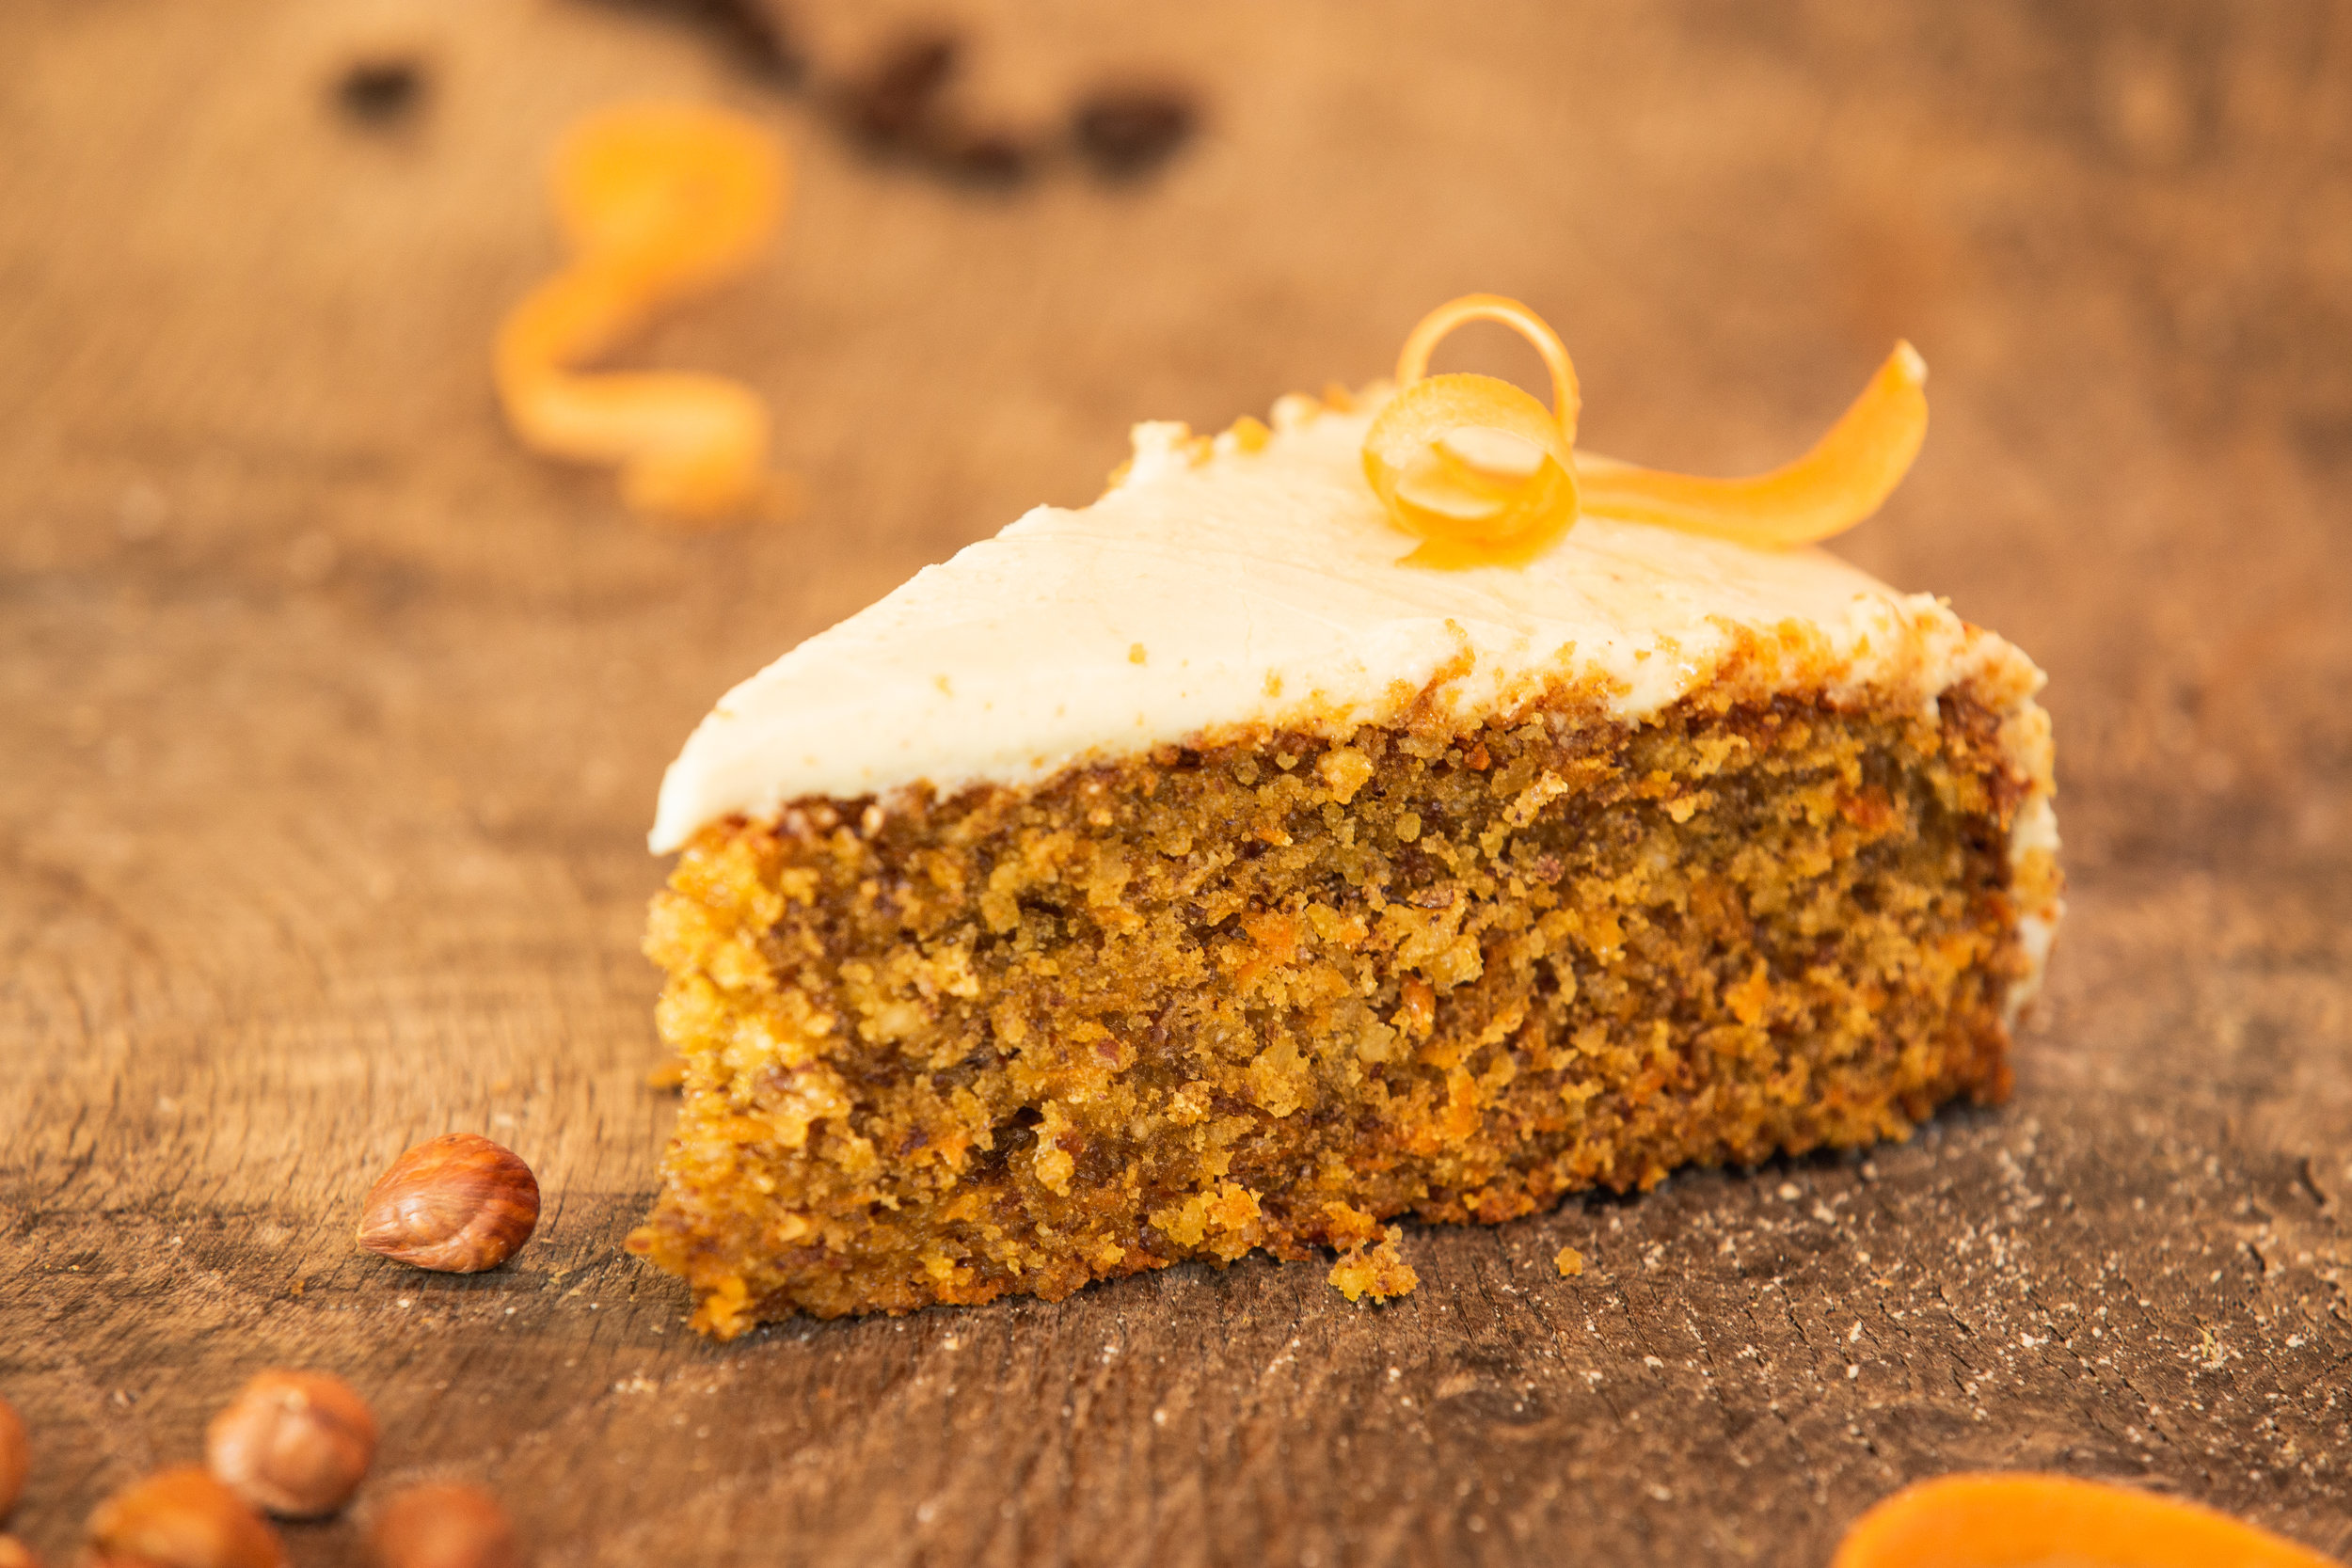 Our cakes are becoming as famous as our scones and pasties. The one pictured here is carrot and hazelnut but we have a variety of others such as chocolate and raspberry (which is also vegan) and the delicious lemon and poppy seed.